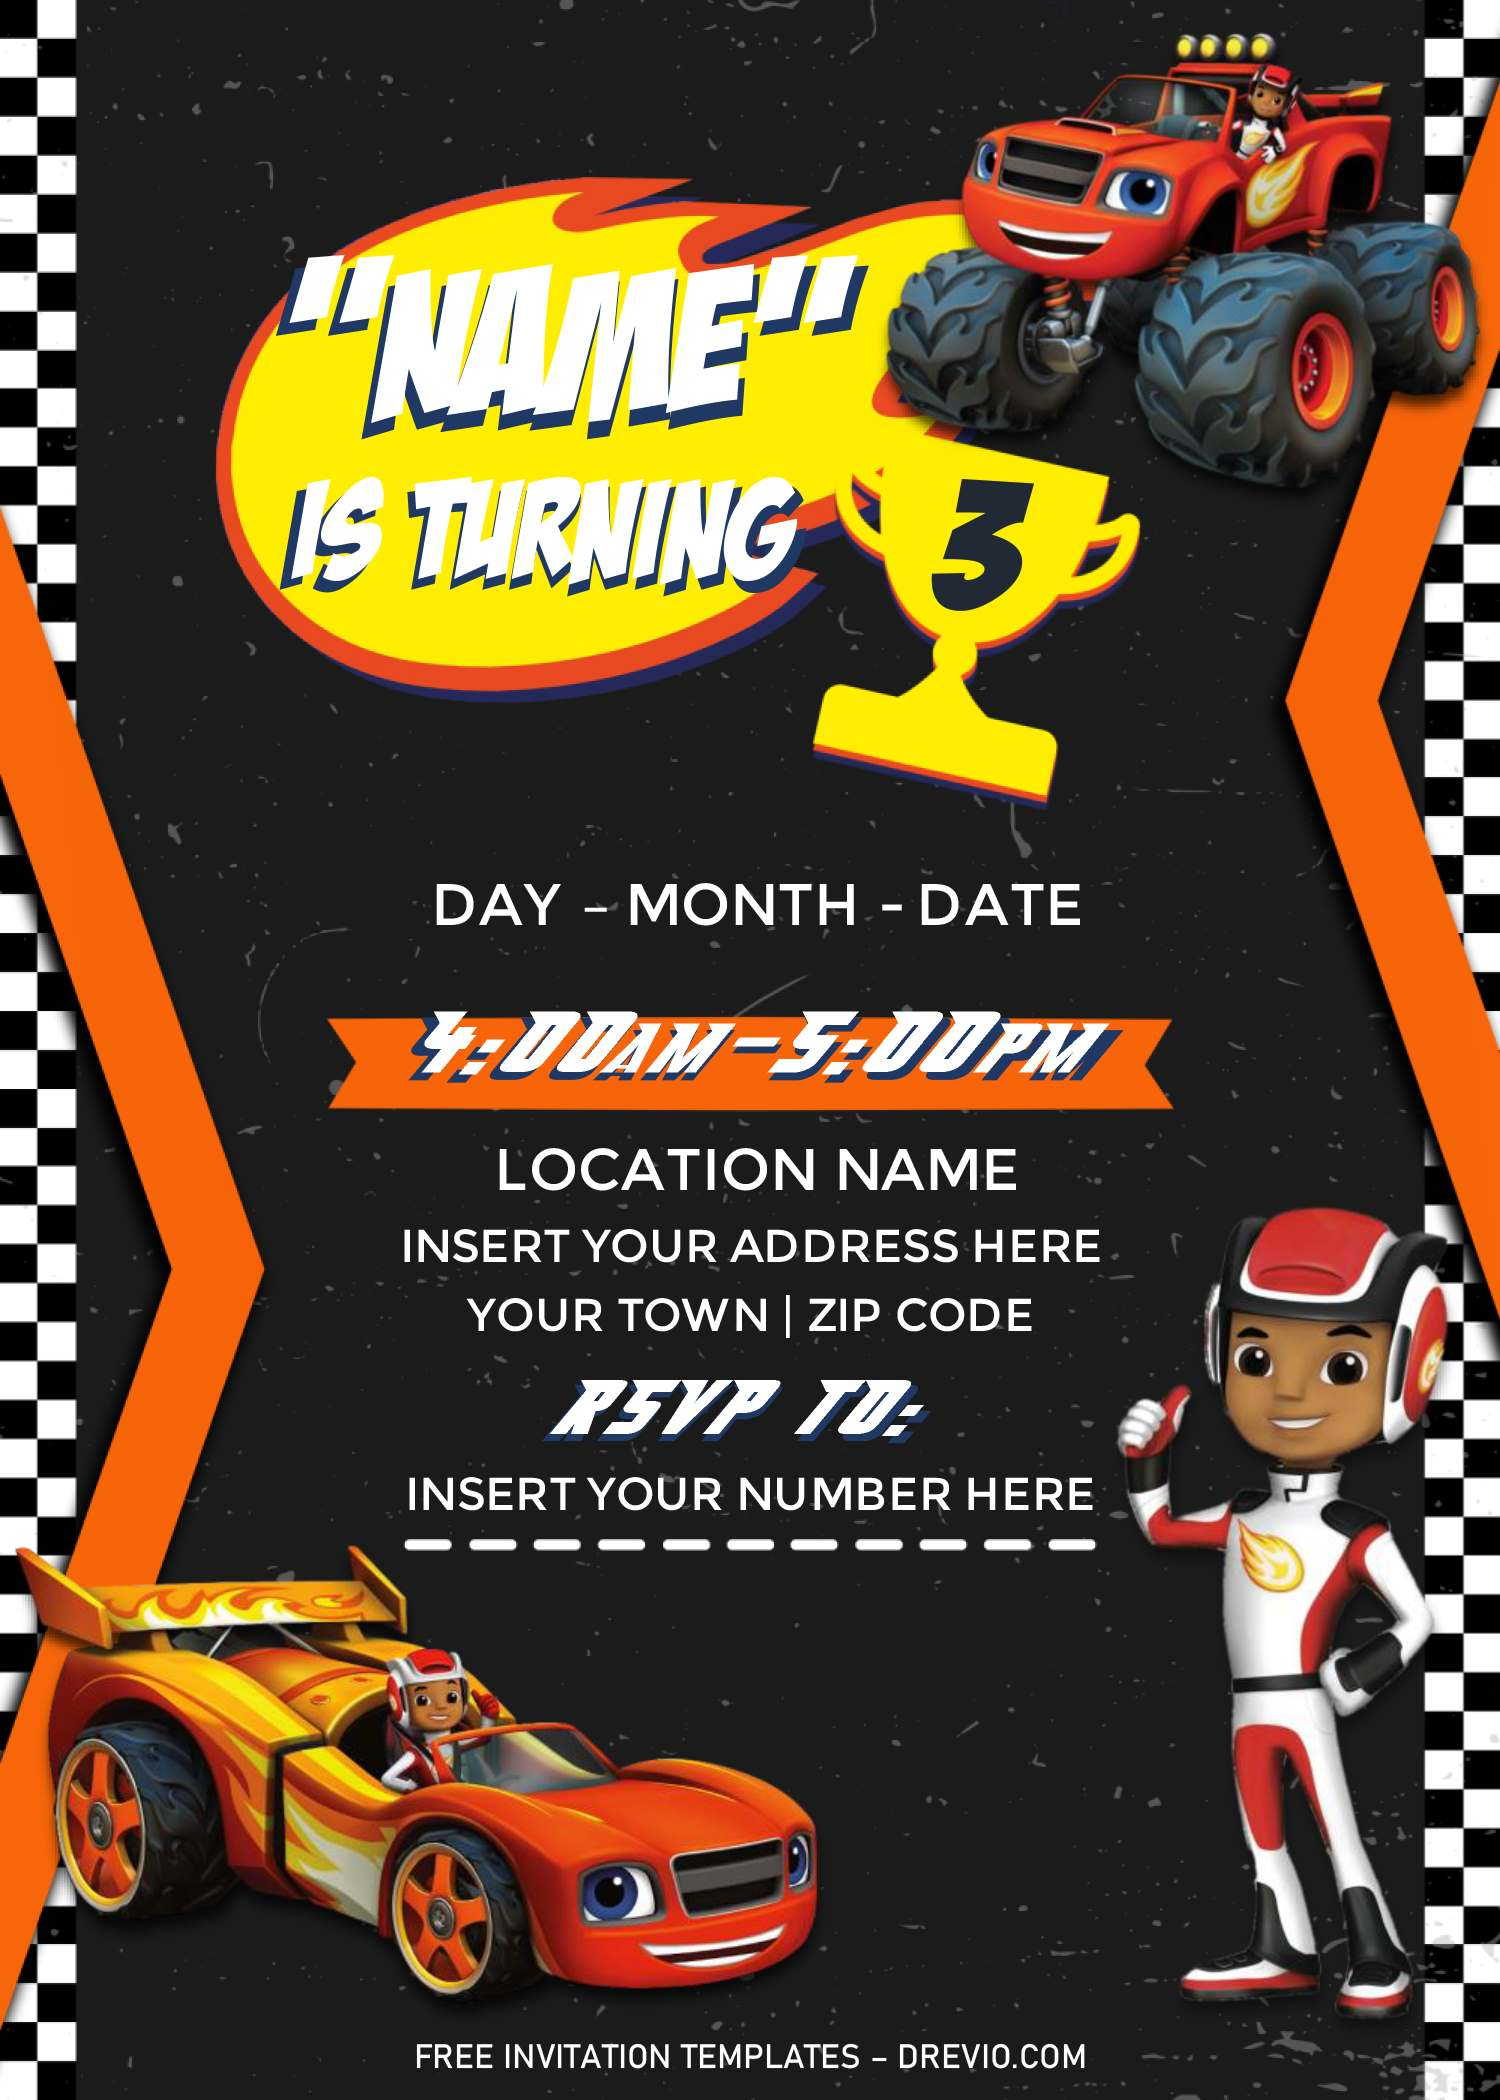 Free Blaze And The Monster Machines Birthday Invitation Templates For Word Download Hundreds Free Printable Birthday Invitation Templates